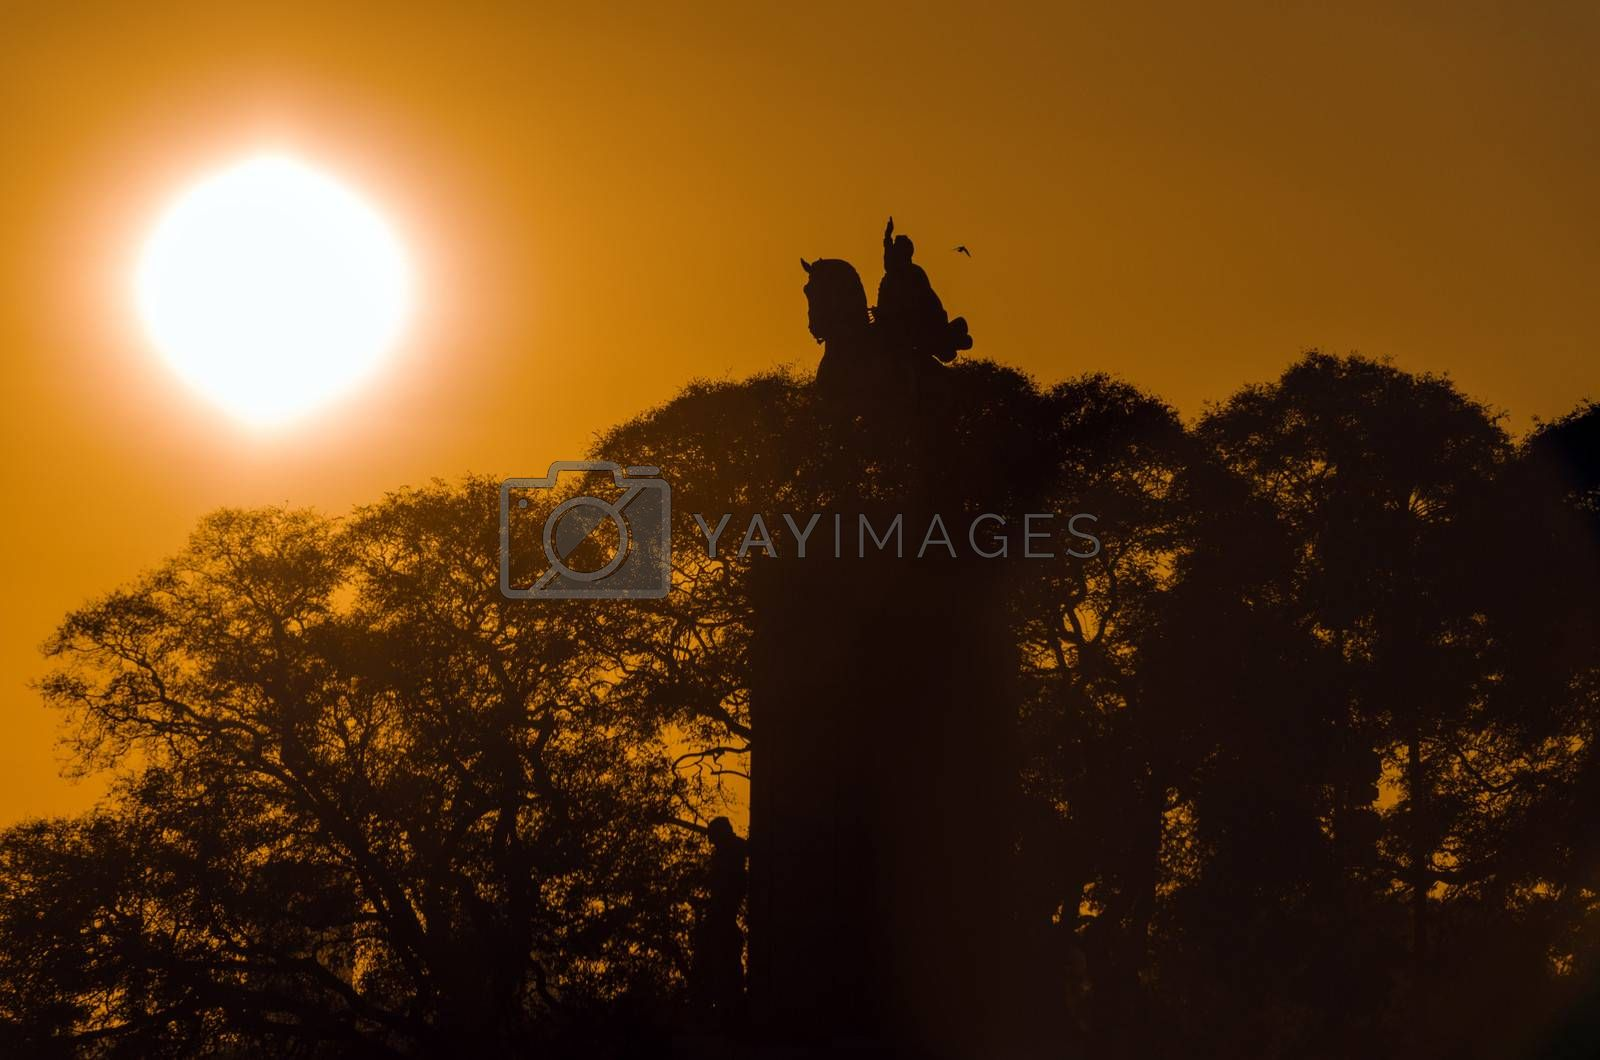 The sun rising of a statue in the Recoleta neighborhood of Buenos Aires, Argentina